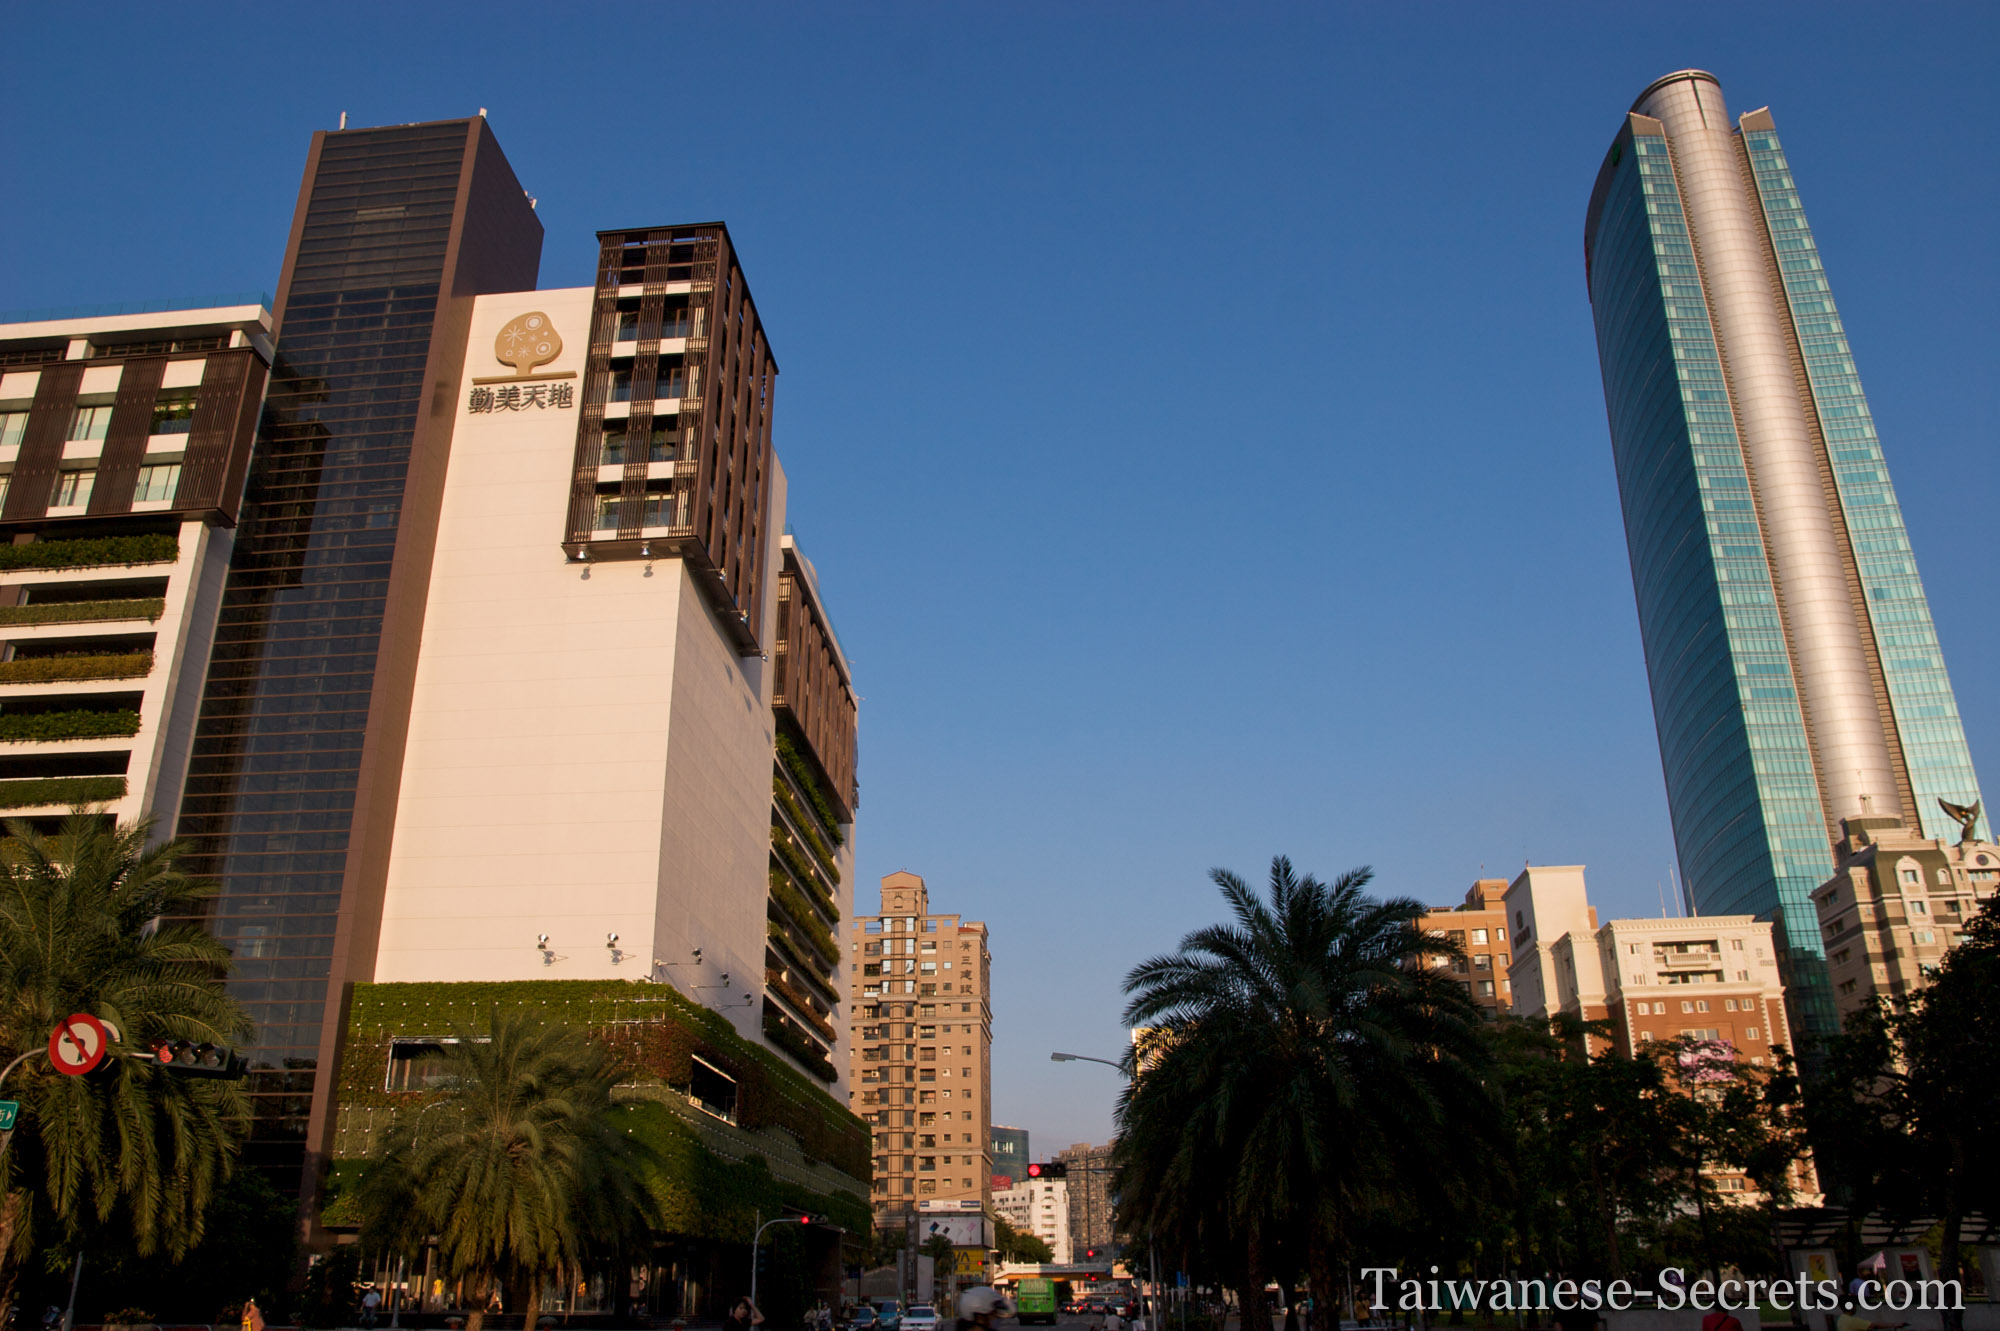 Downtown Taichung